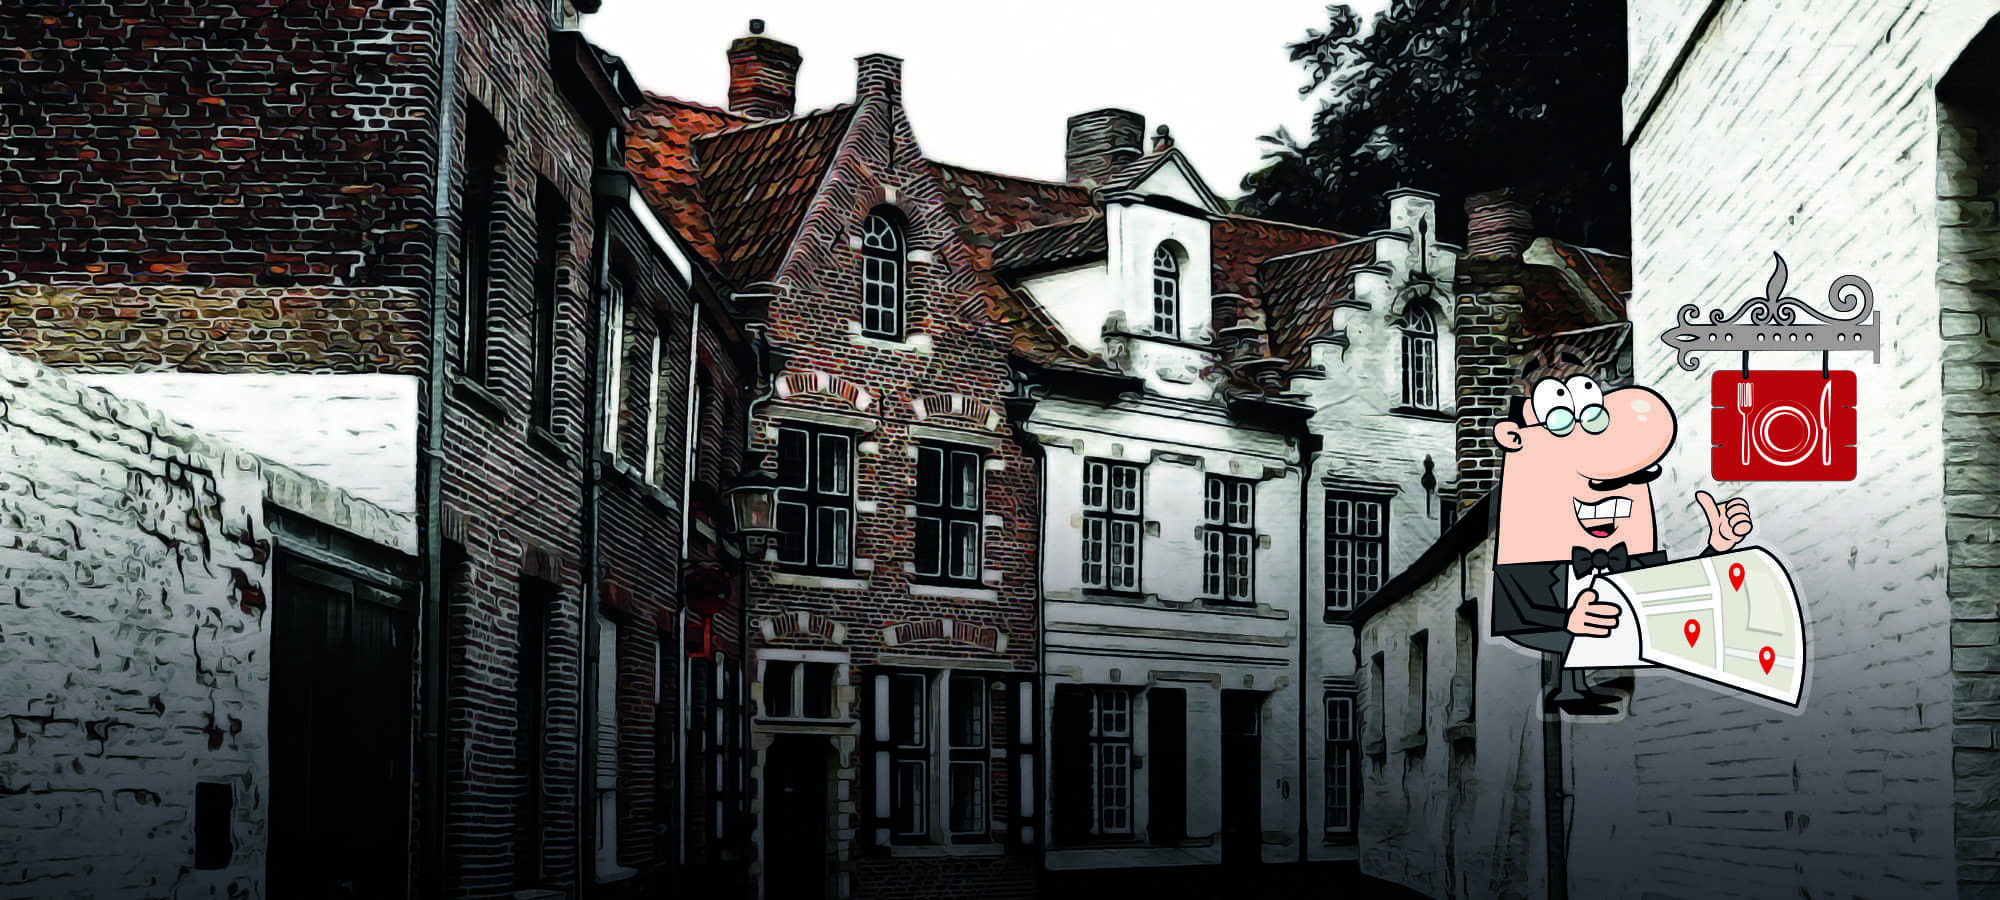 Bruges: the tastes from fairytales